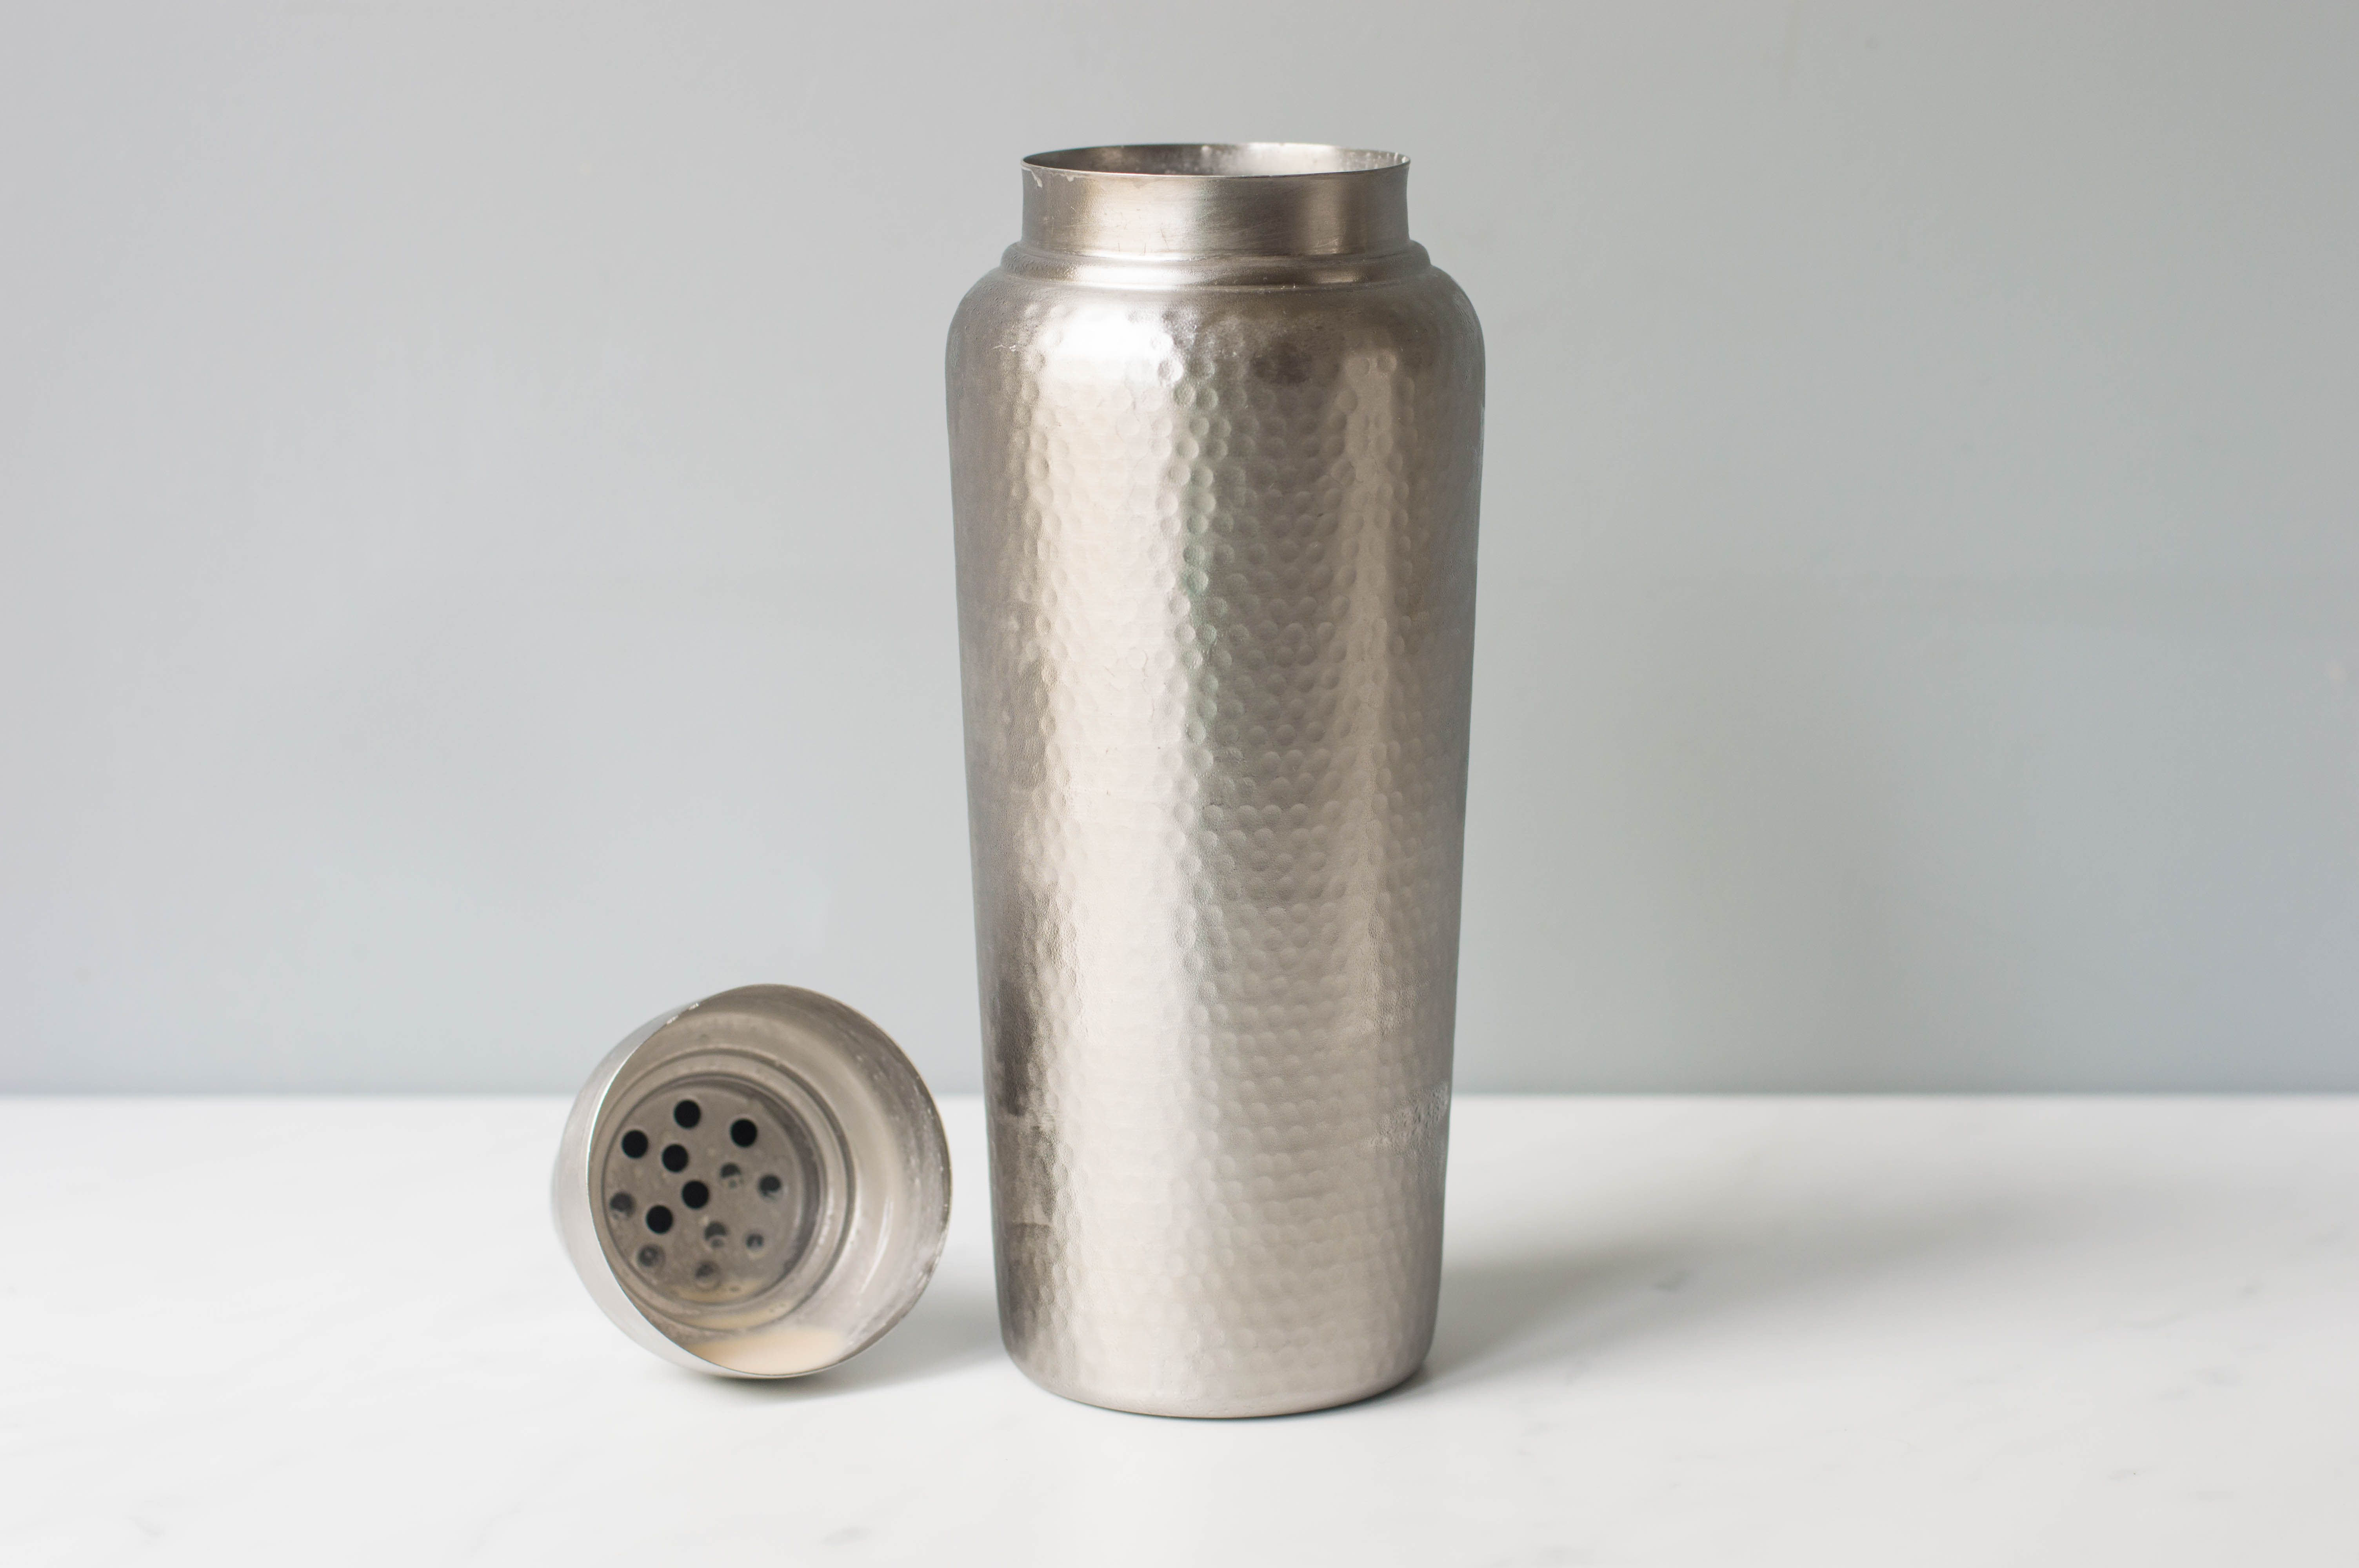 Cold cocktail shaker